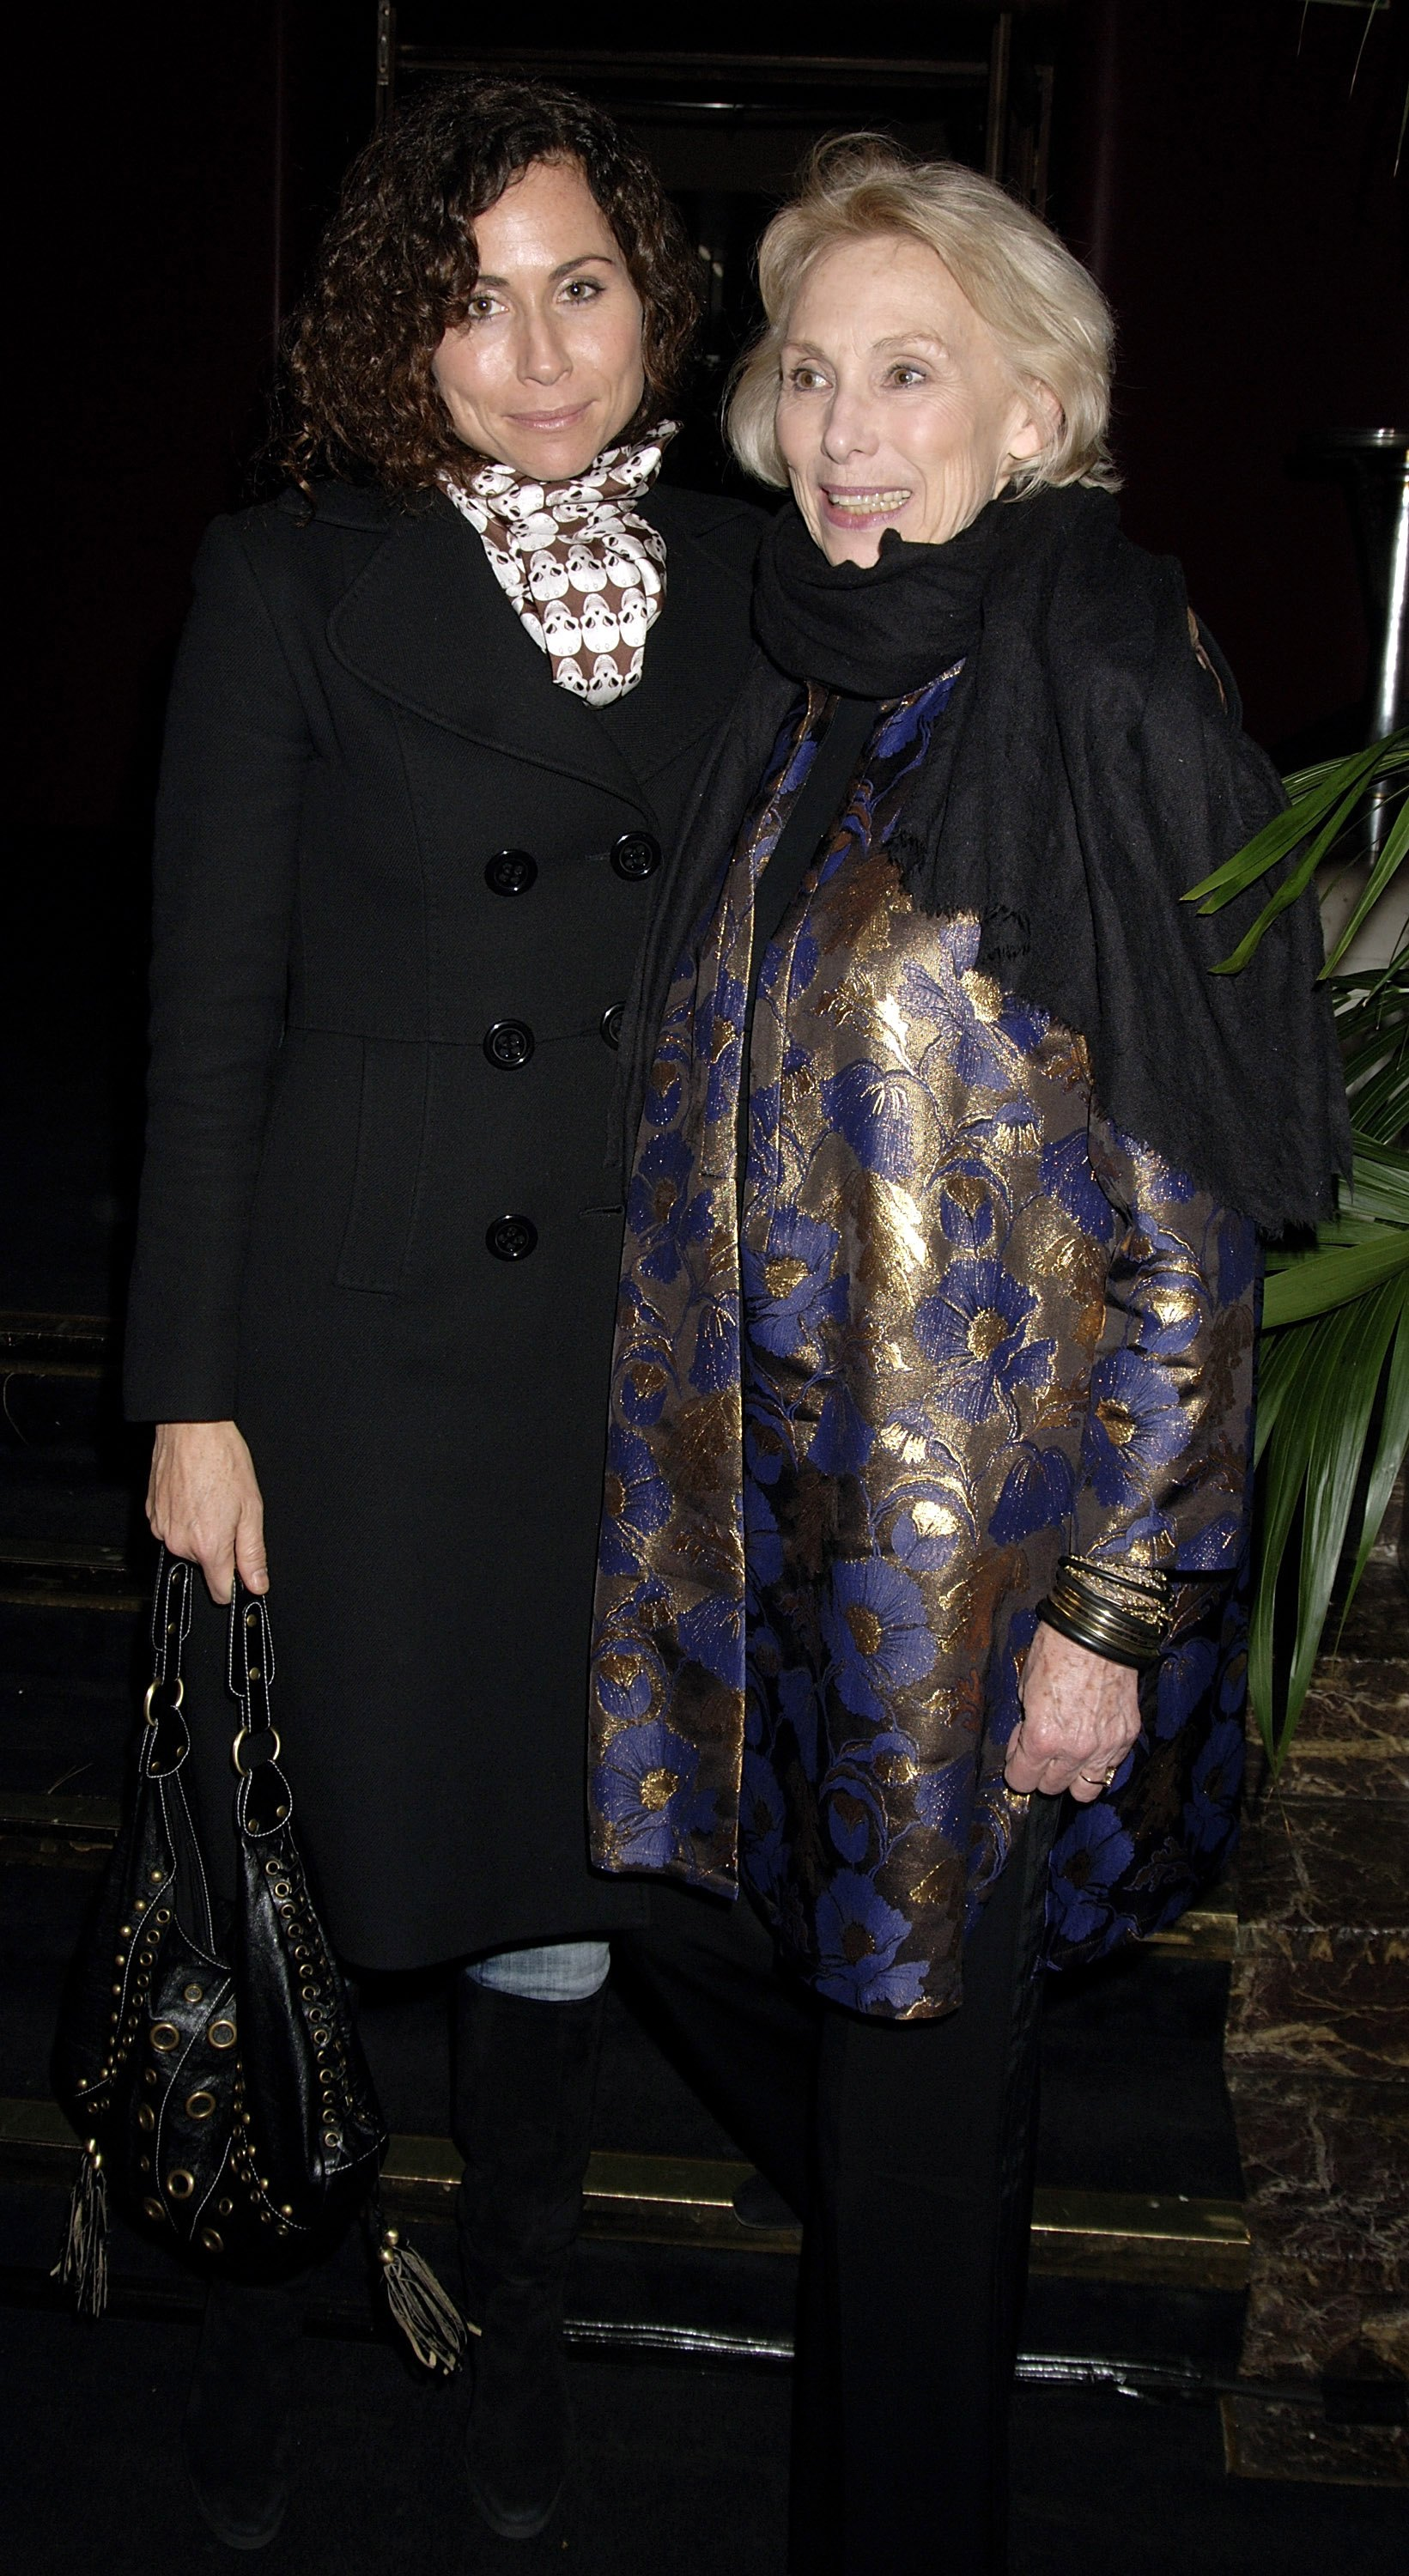 Actress Minnie Driver and her mother Gaynor Churchward